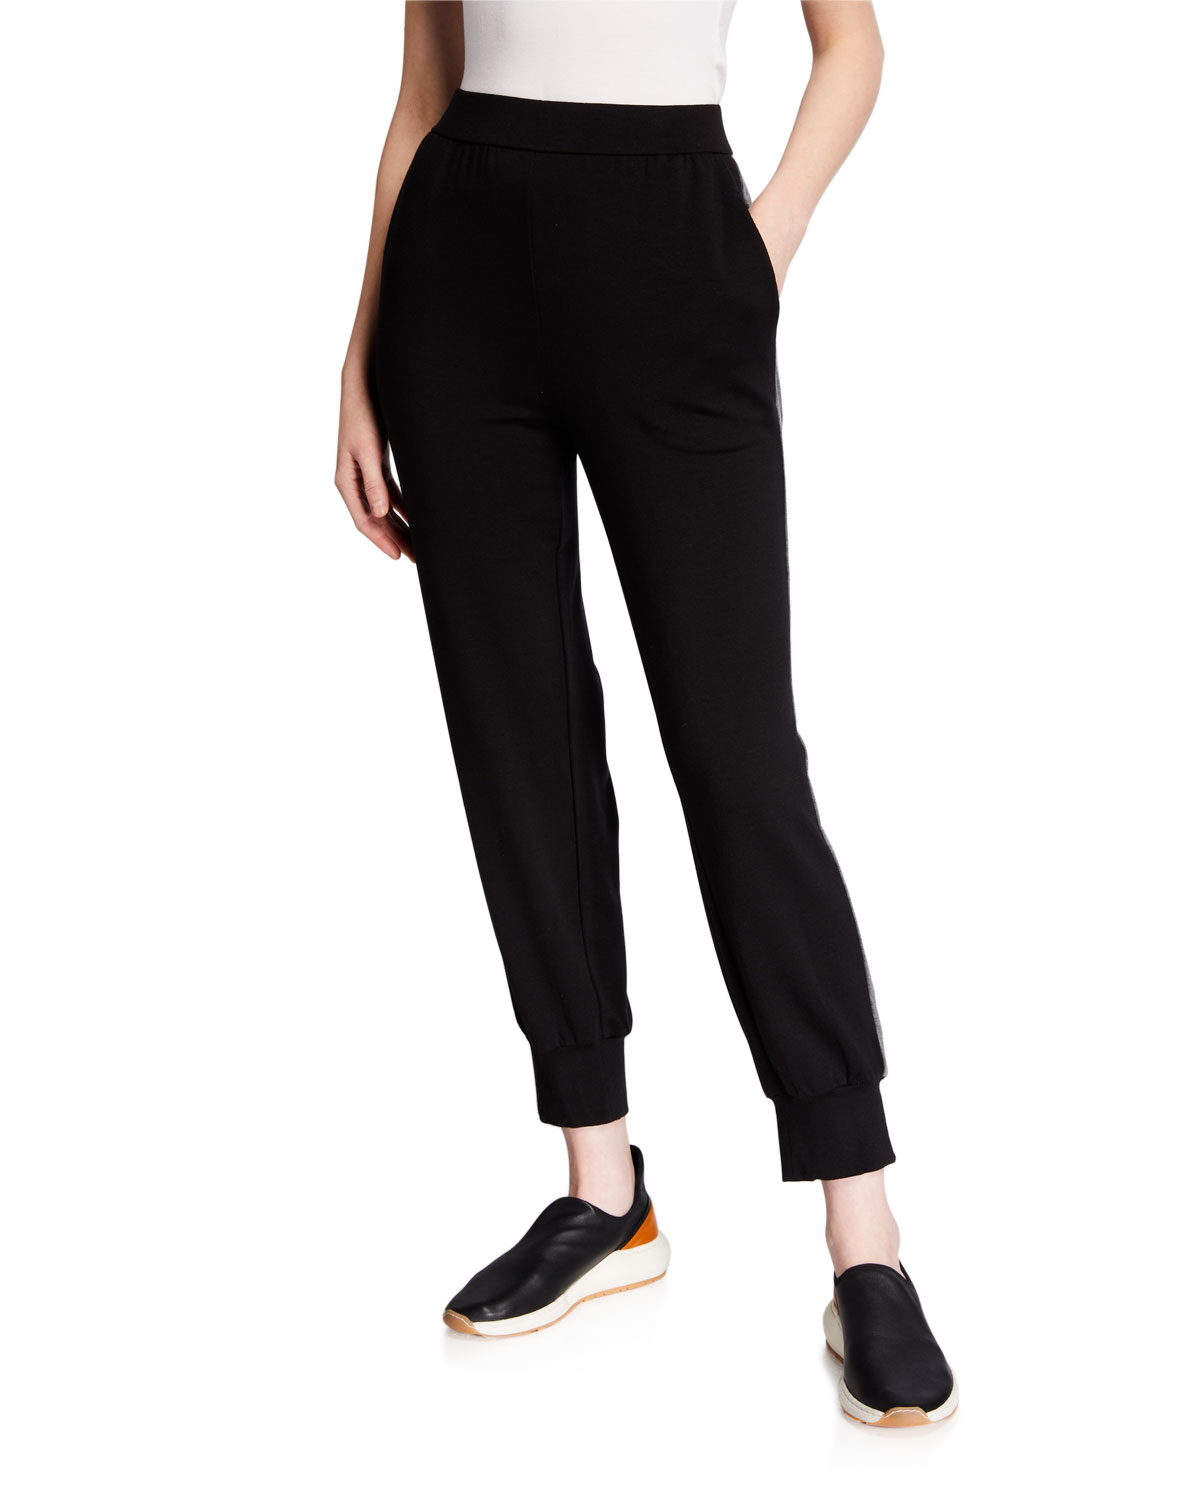 Eileen Fisher Pants PETITE STRETCH TERRY SIDE-STRIPED TRACK PANTS